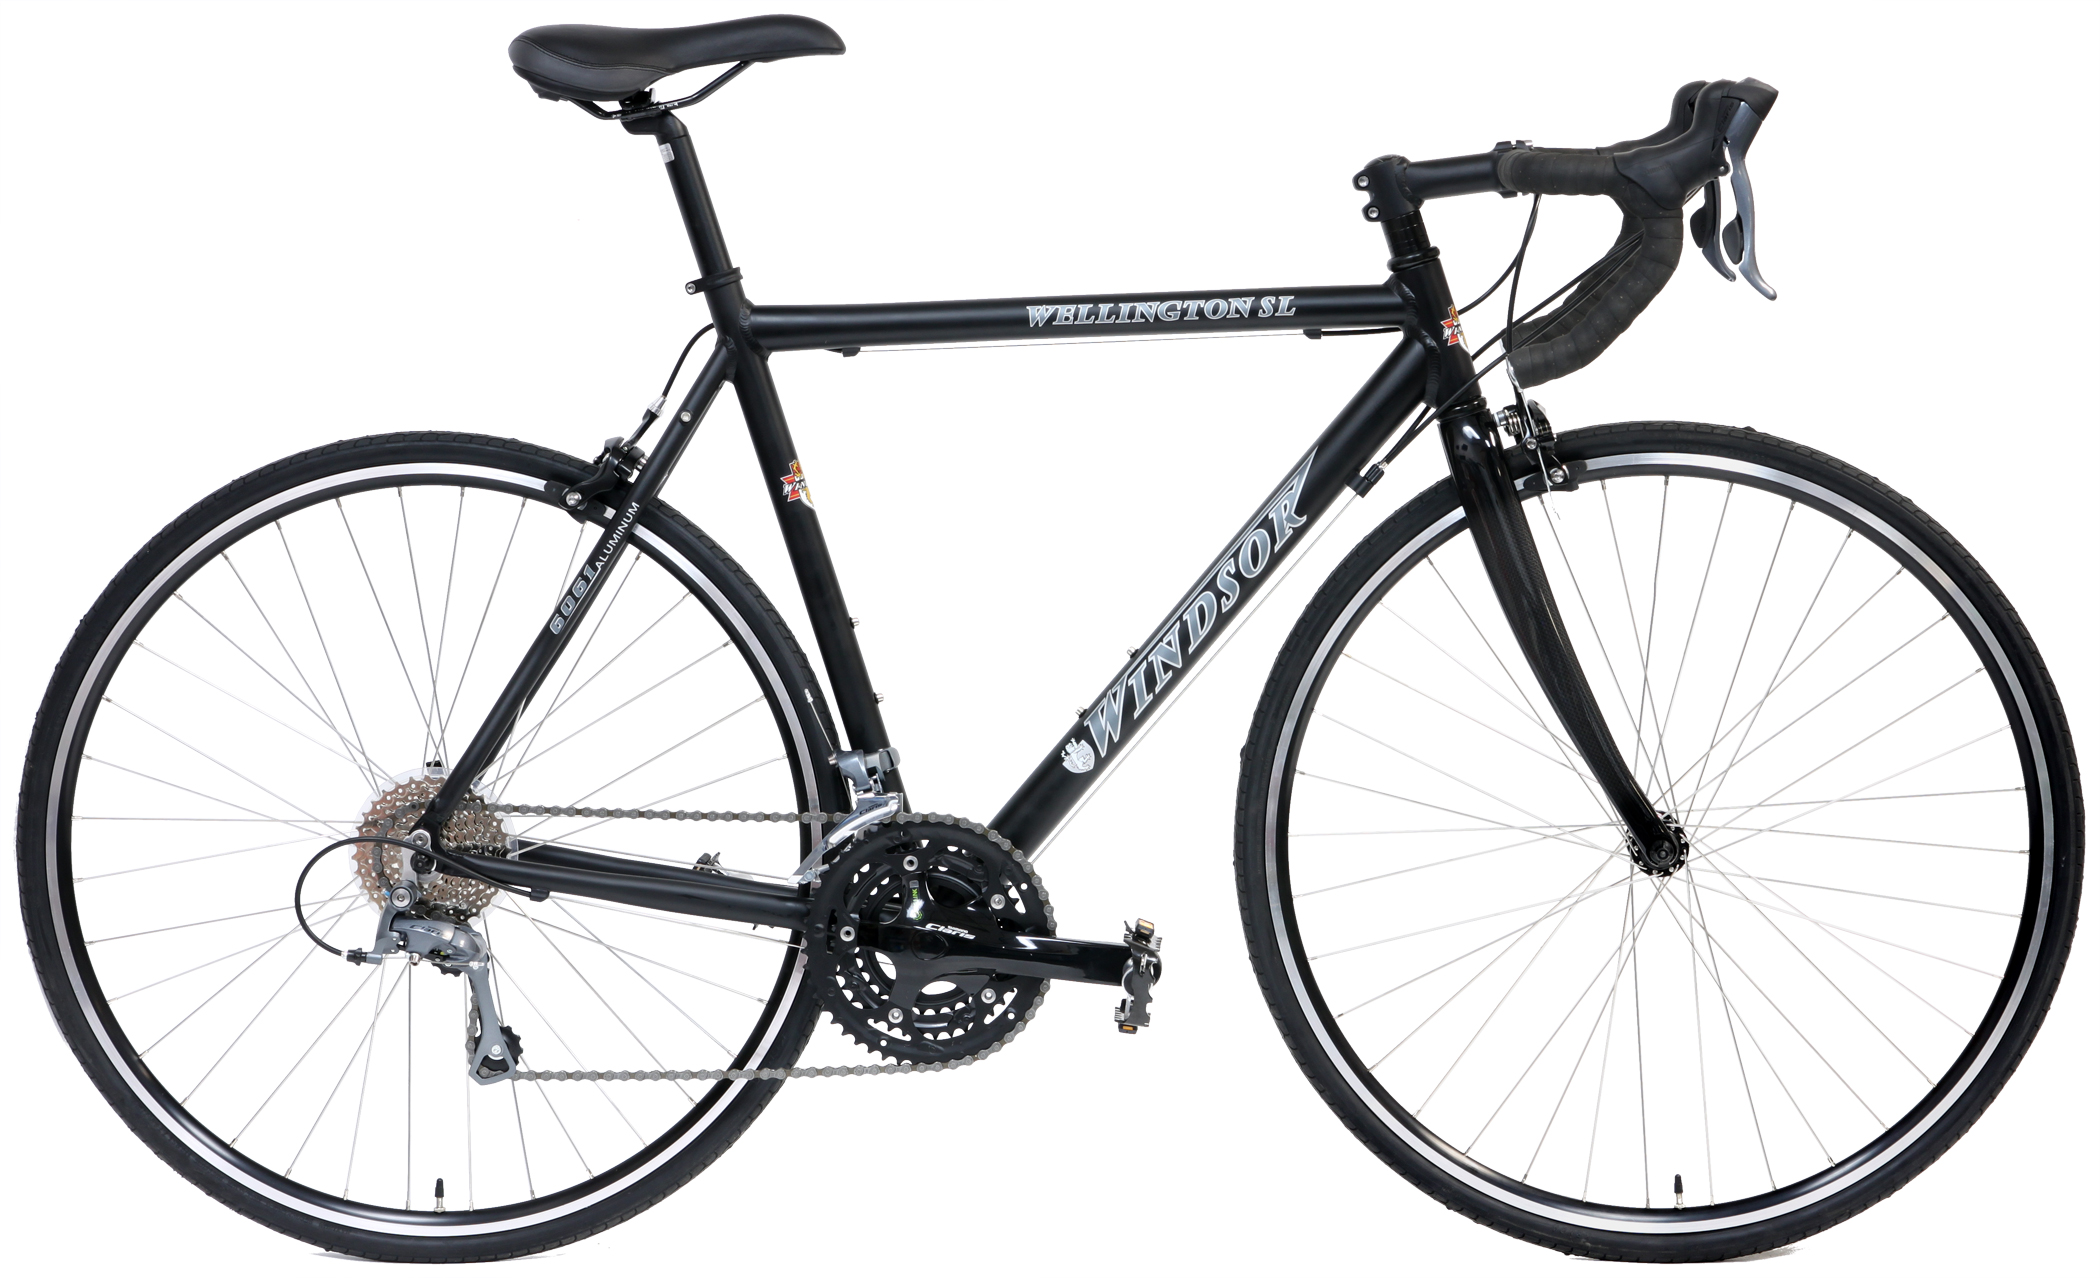 Bikes Windsor Wellington SL Shimano Claris 24 Speed Carbon Fork Road Bike Image